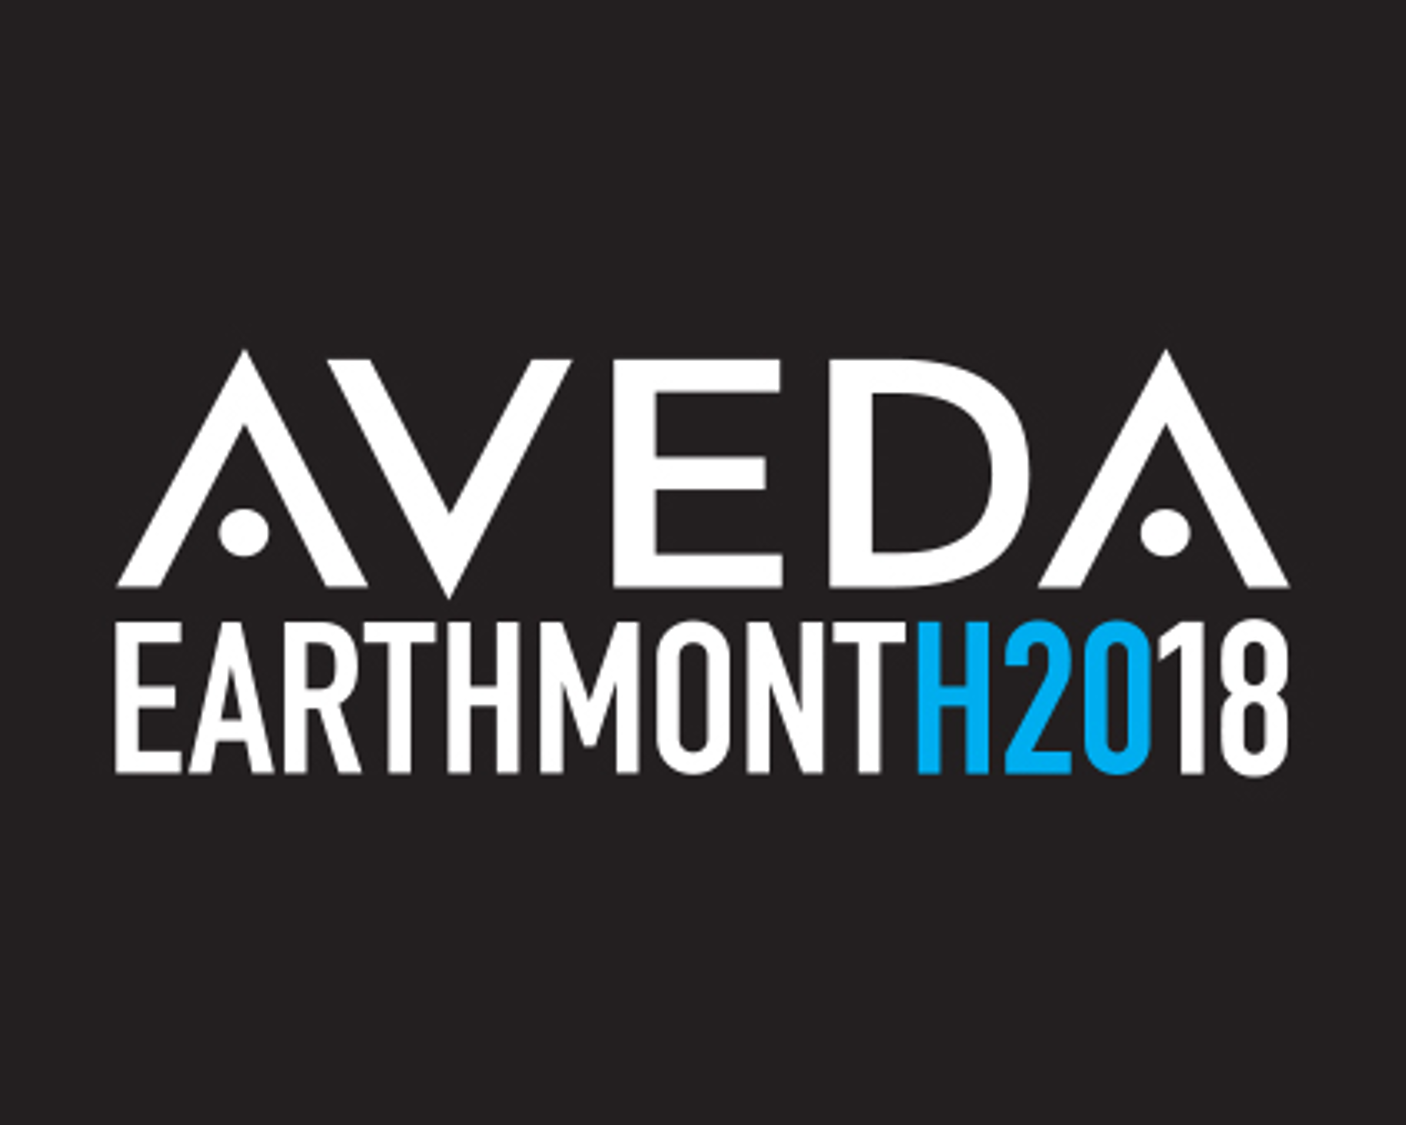 AVEDA Earth Month 2018